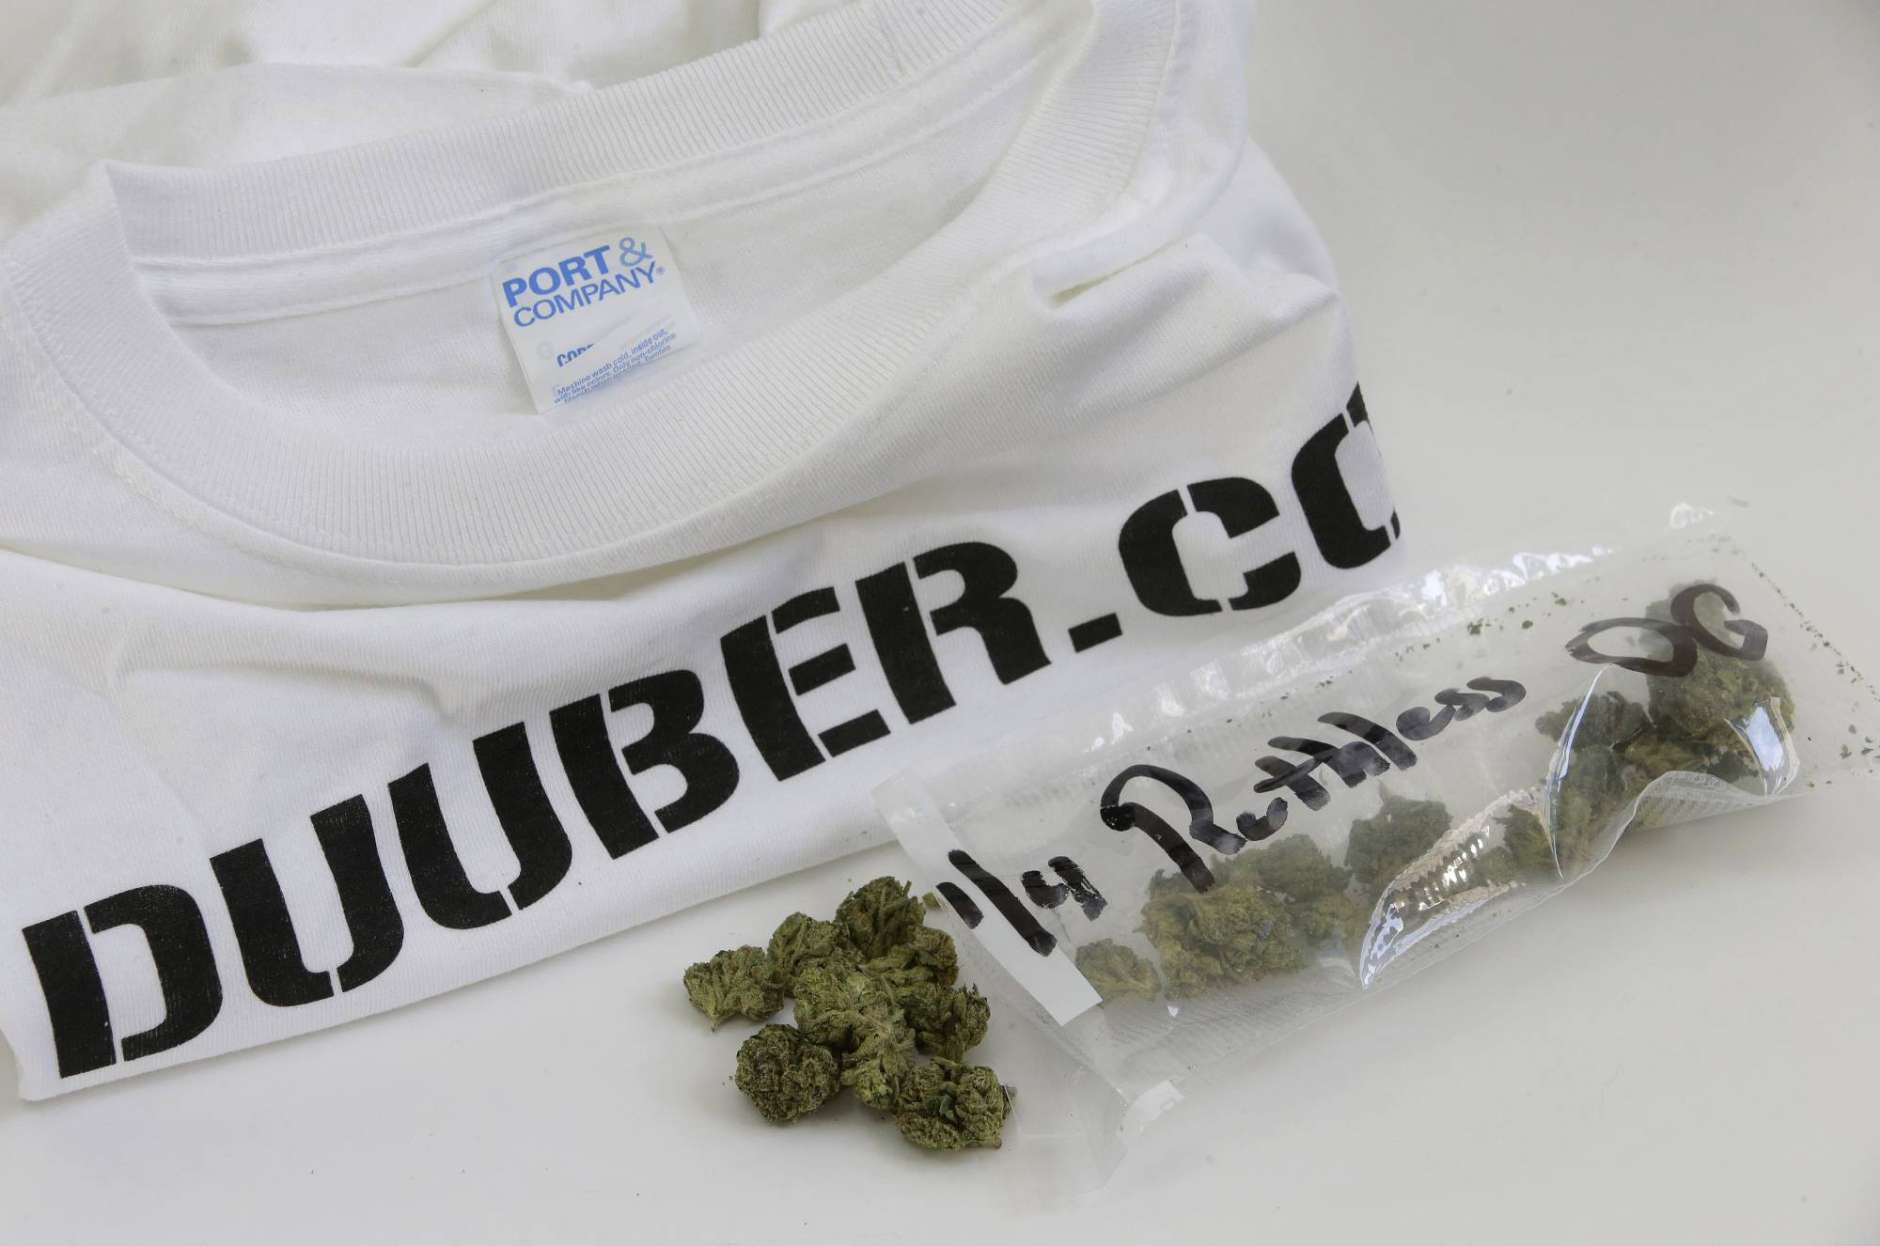 "In this Thursday, Dec. 21, 2017 photo, marijuana and a T-shirt from Duuber.com delivery company are displayed together, in Walpole, Mass. Companies like Duuber.com have been exploiting a provision in state marijuana laws that allows people to exchange up to an ounce of marijuana, so long as it's given away or ""gifted"" without any money exchanged. The T-shirt was $100, but the marijuana was free. (AP Photo/Steven Senne)"